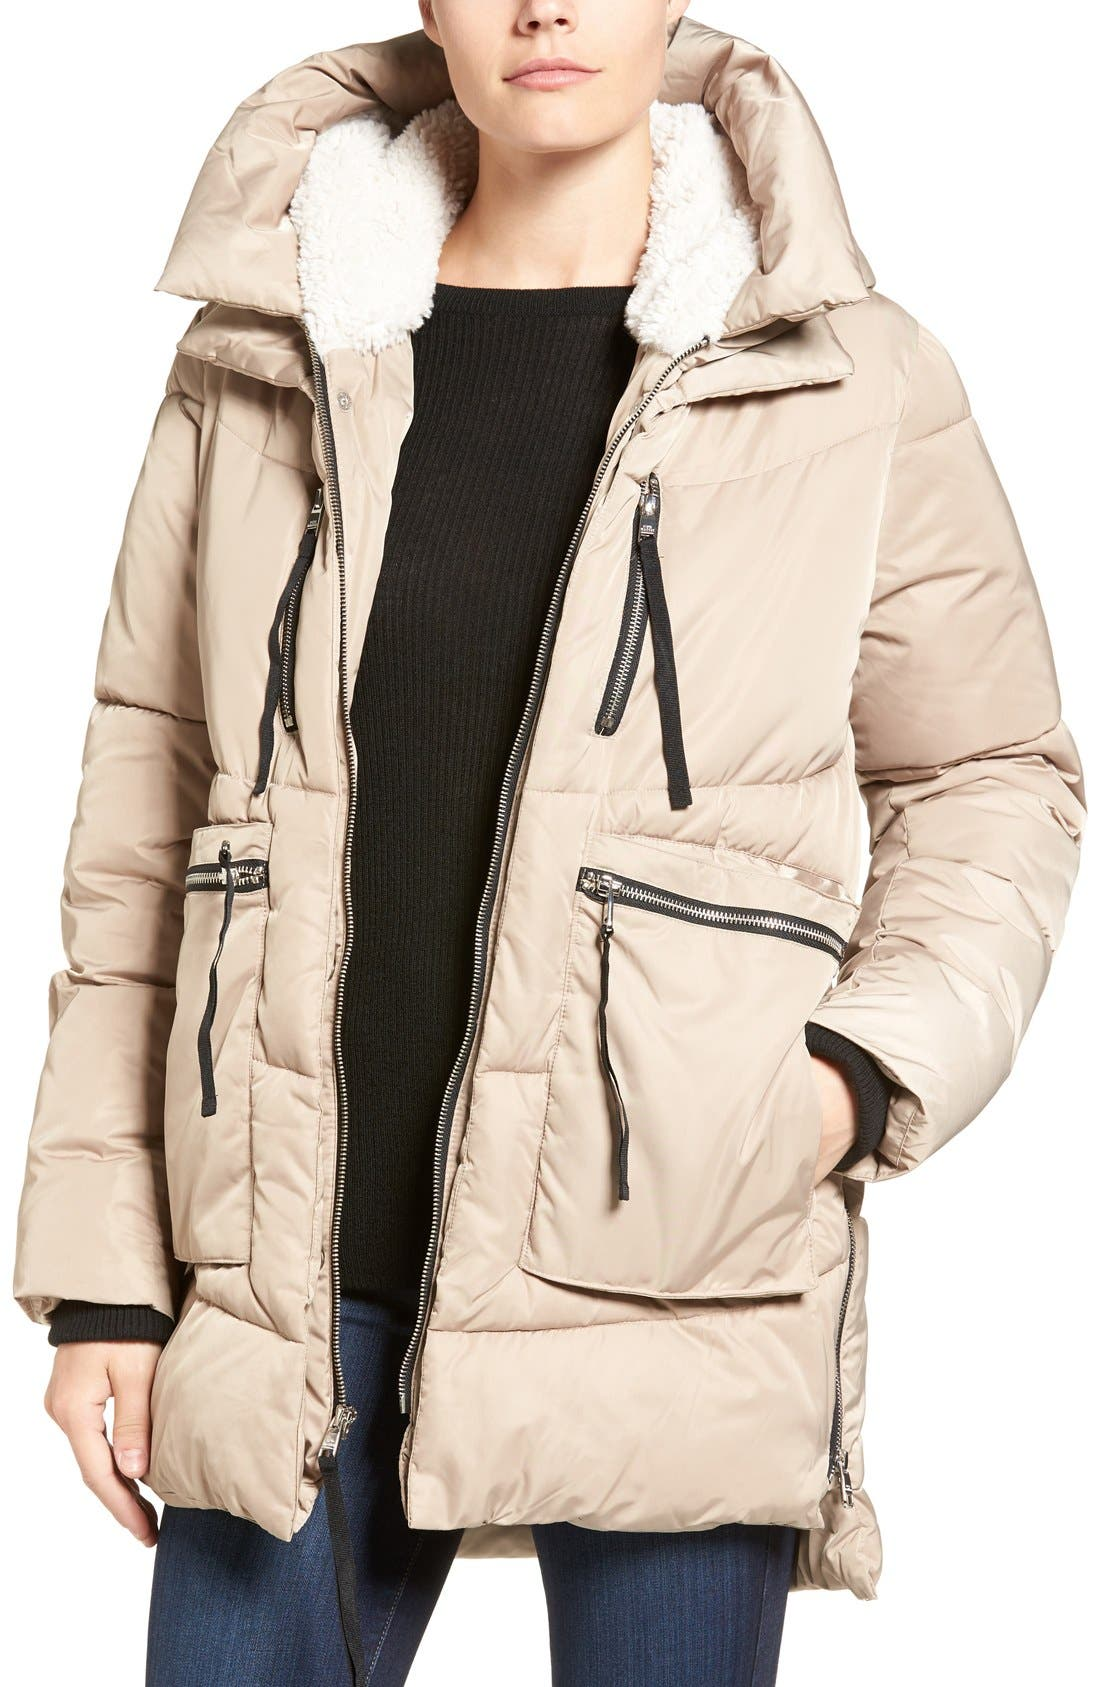 Alternate Image 1 Selected - Steve Madden Hooded Puffer Jacket with Faux Shearling Trim